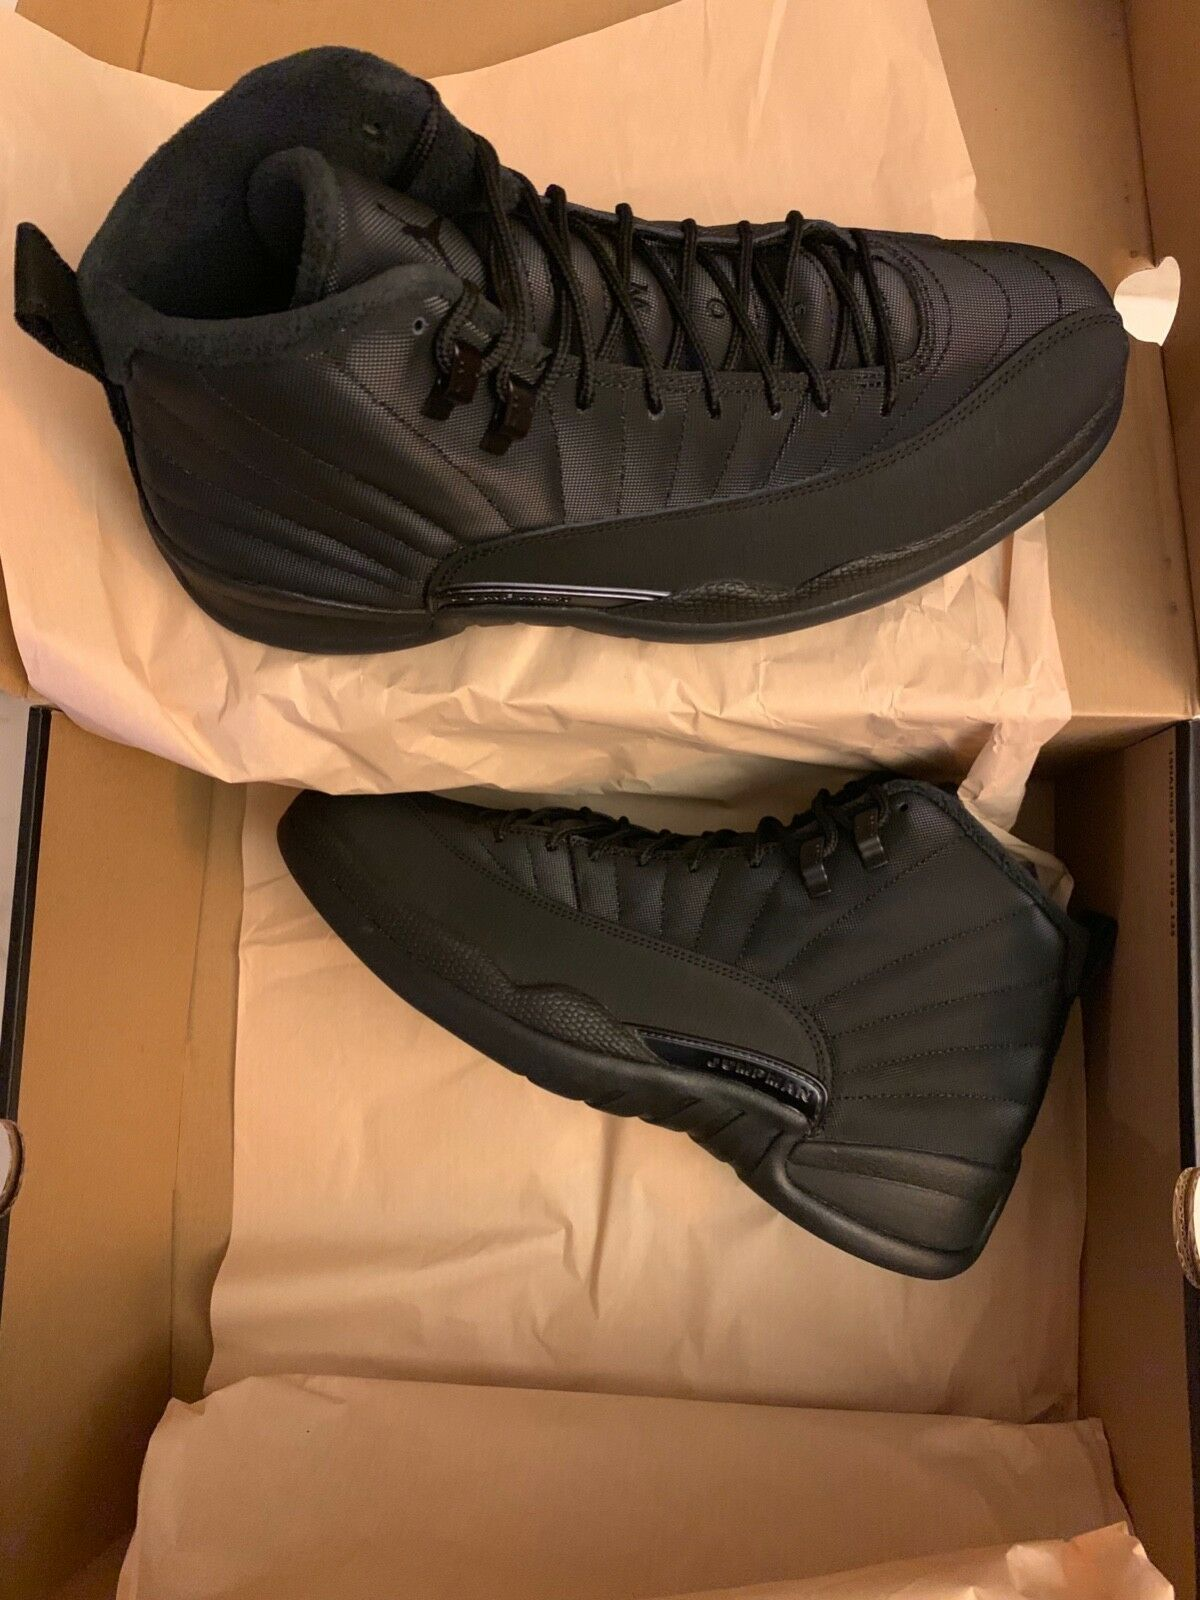 Air Jordan Retro 12 Dimensione 11 nero Brand New In In In Box 9c3dcb